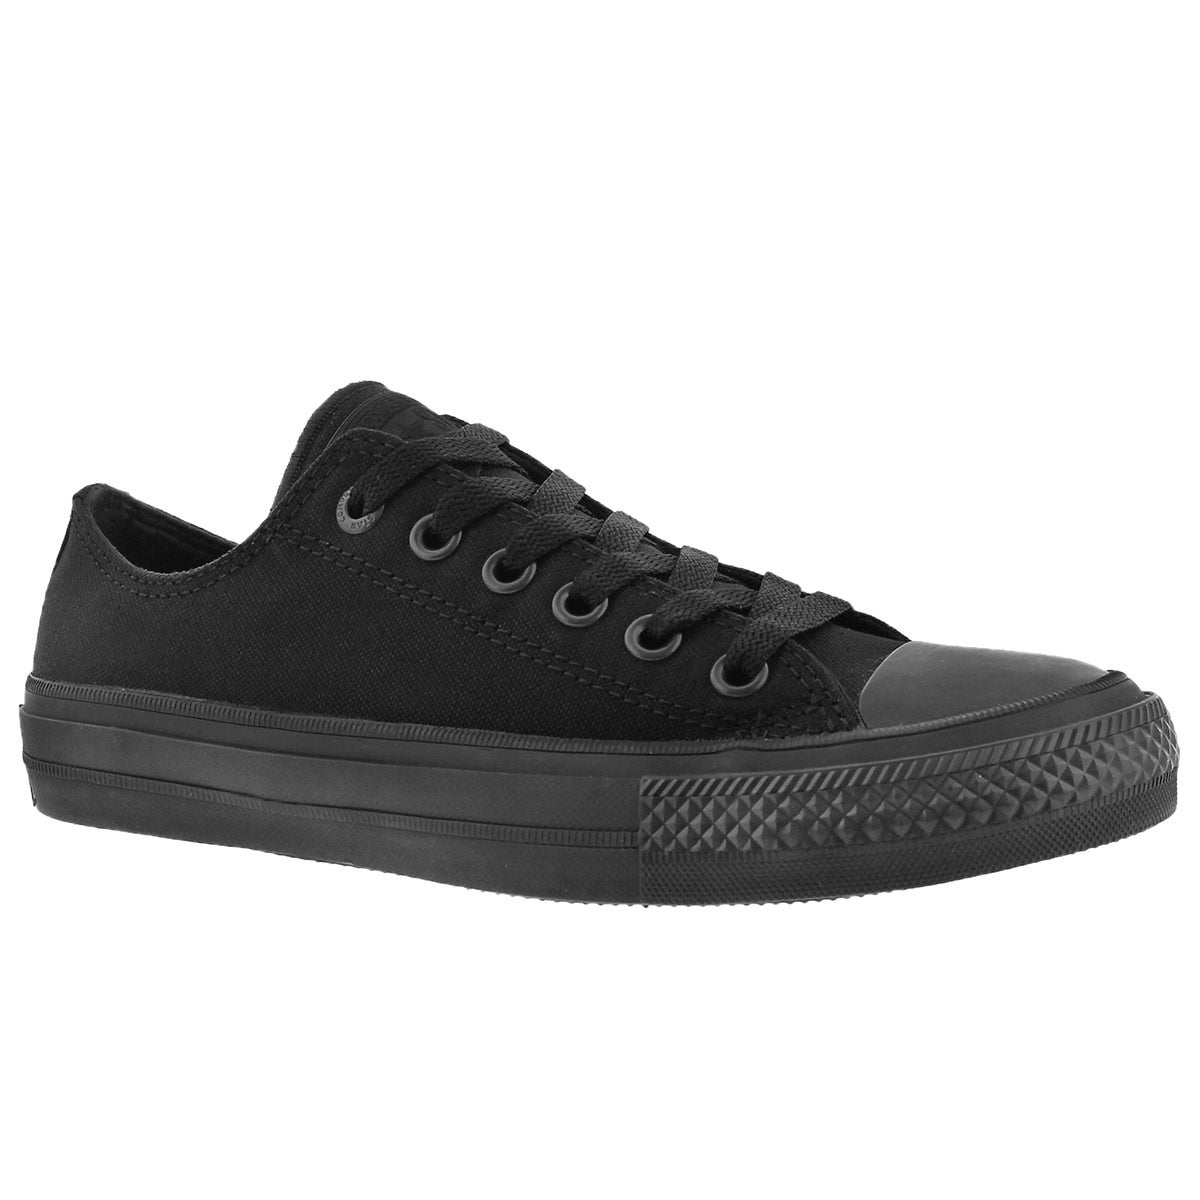 Women's CHUCK II VIZ FLOW black mono sneakers